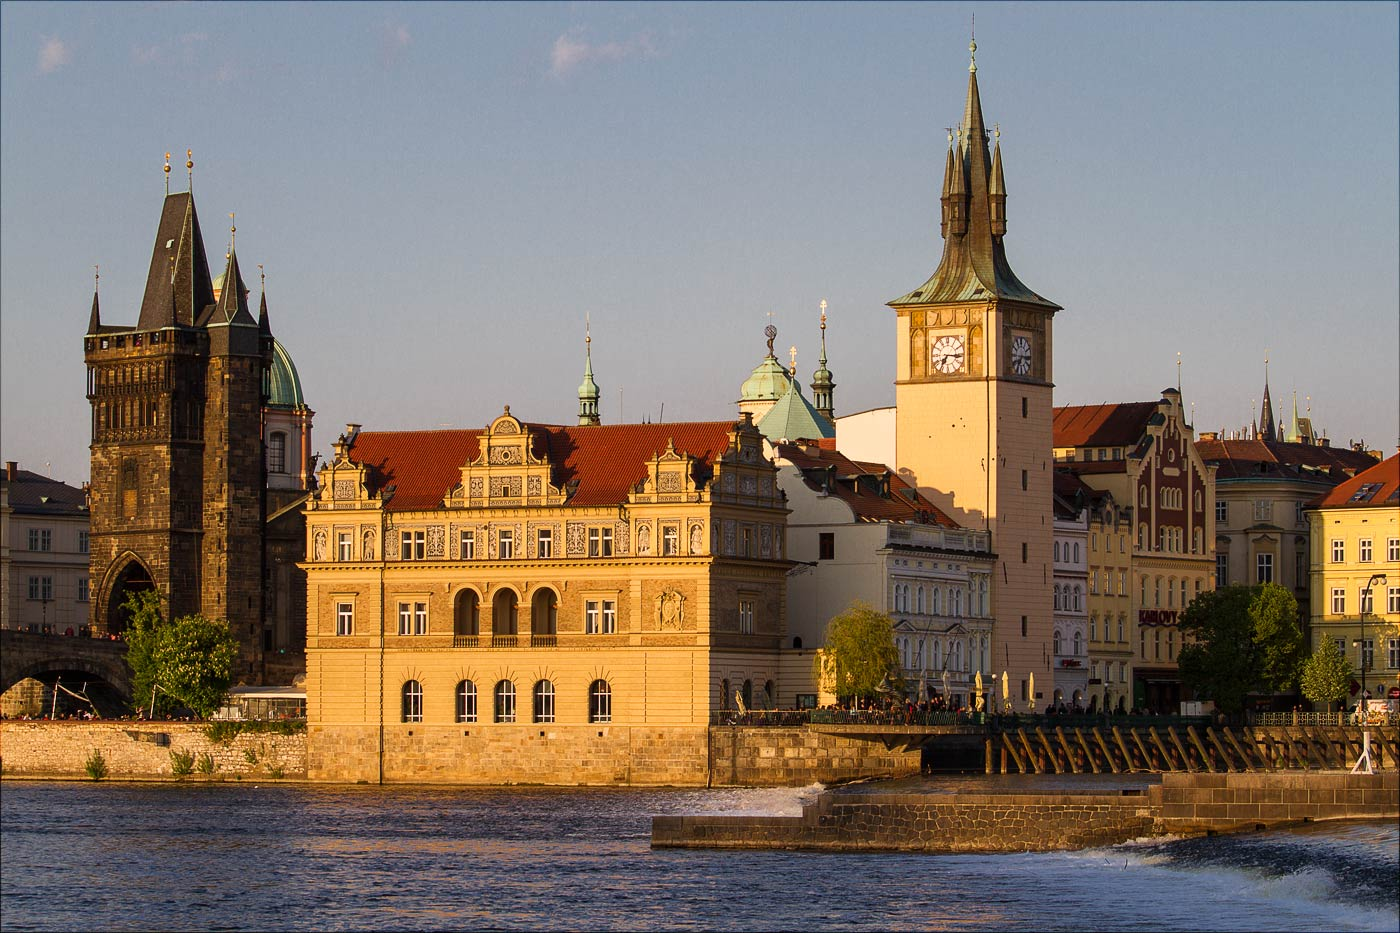 http://countryczech.com/wp-content/uploads/2015/05/photos/20150430-181724_Praha.jpg